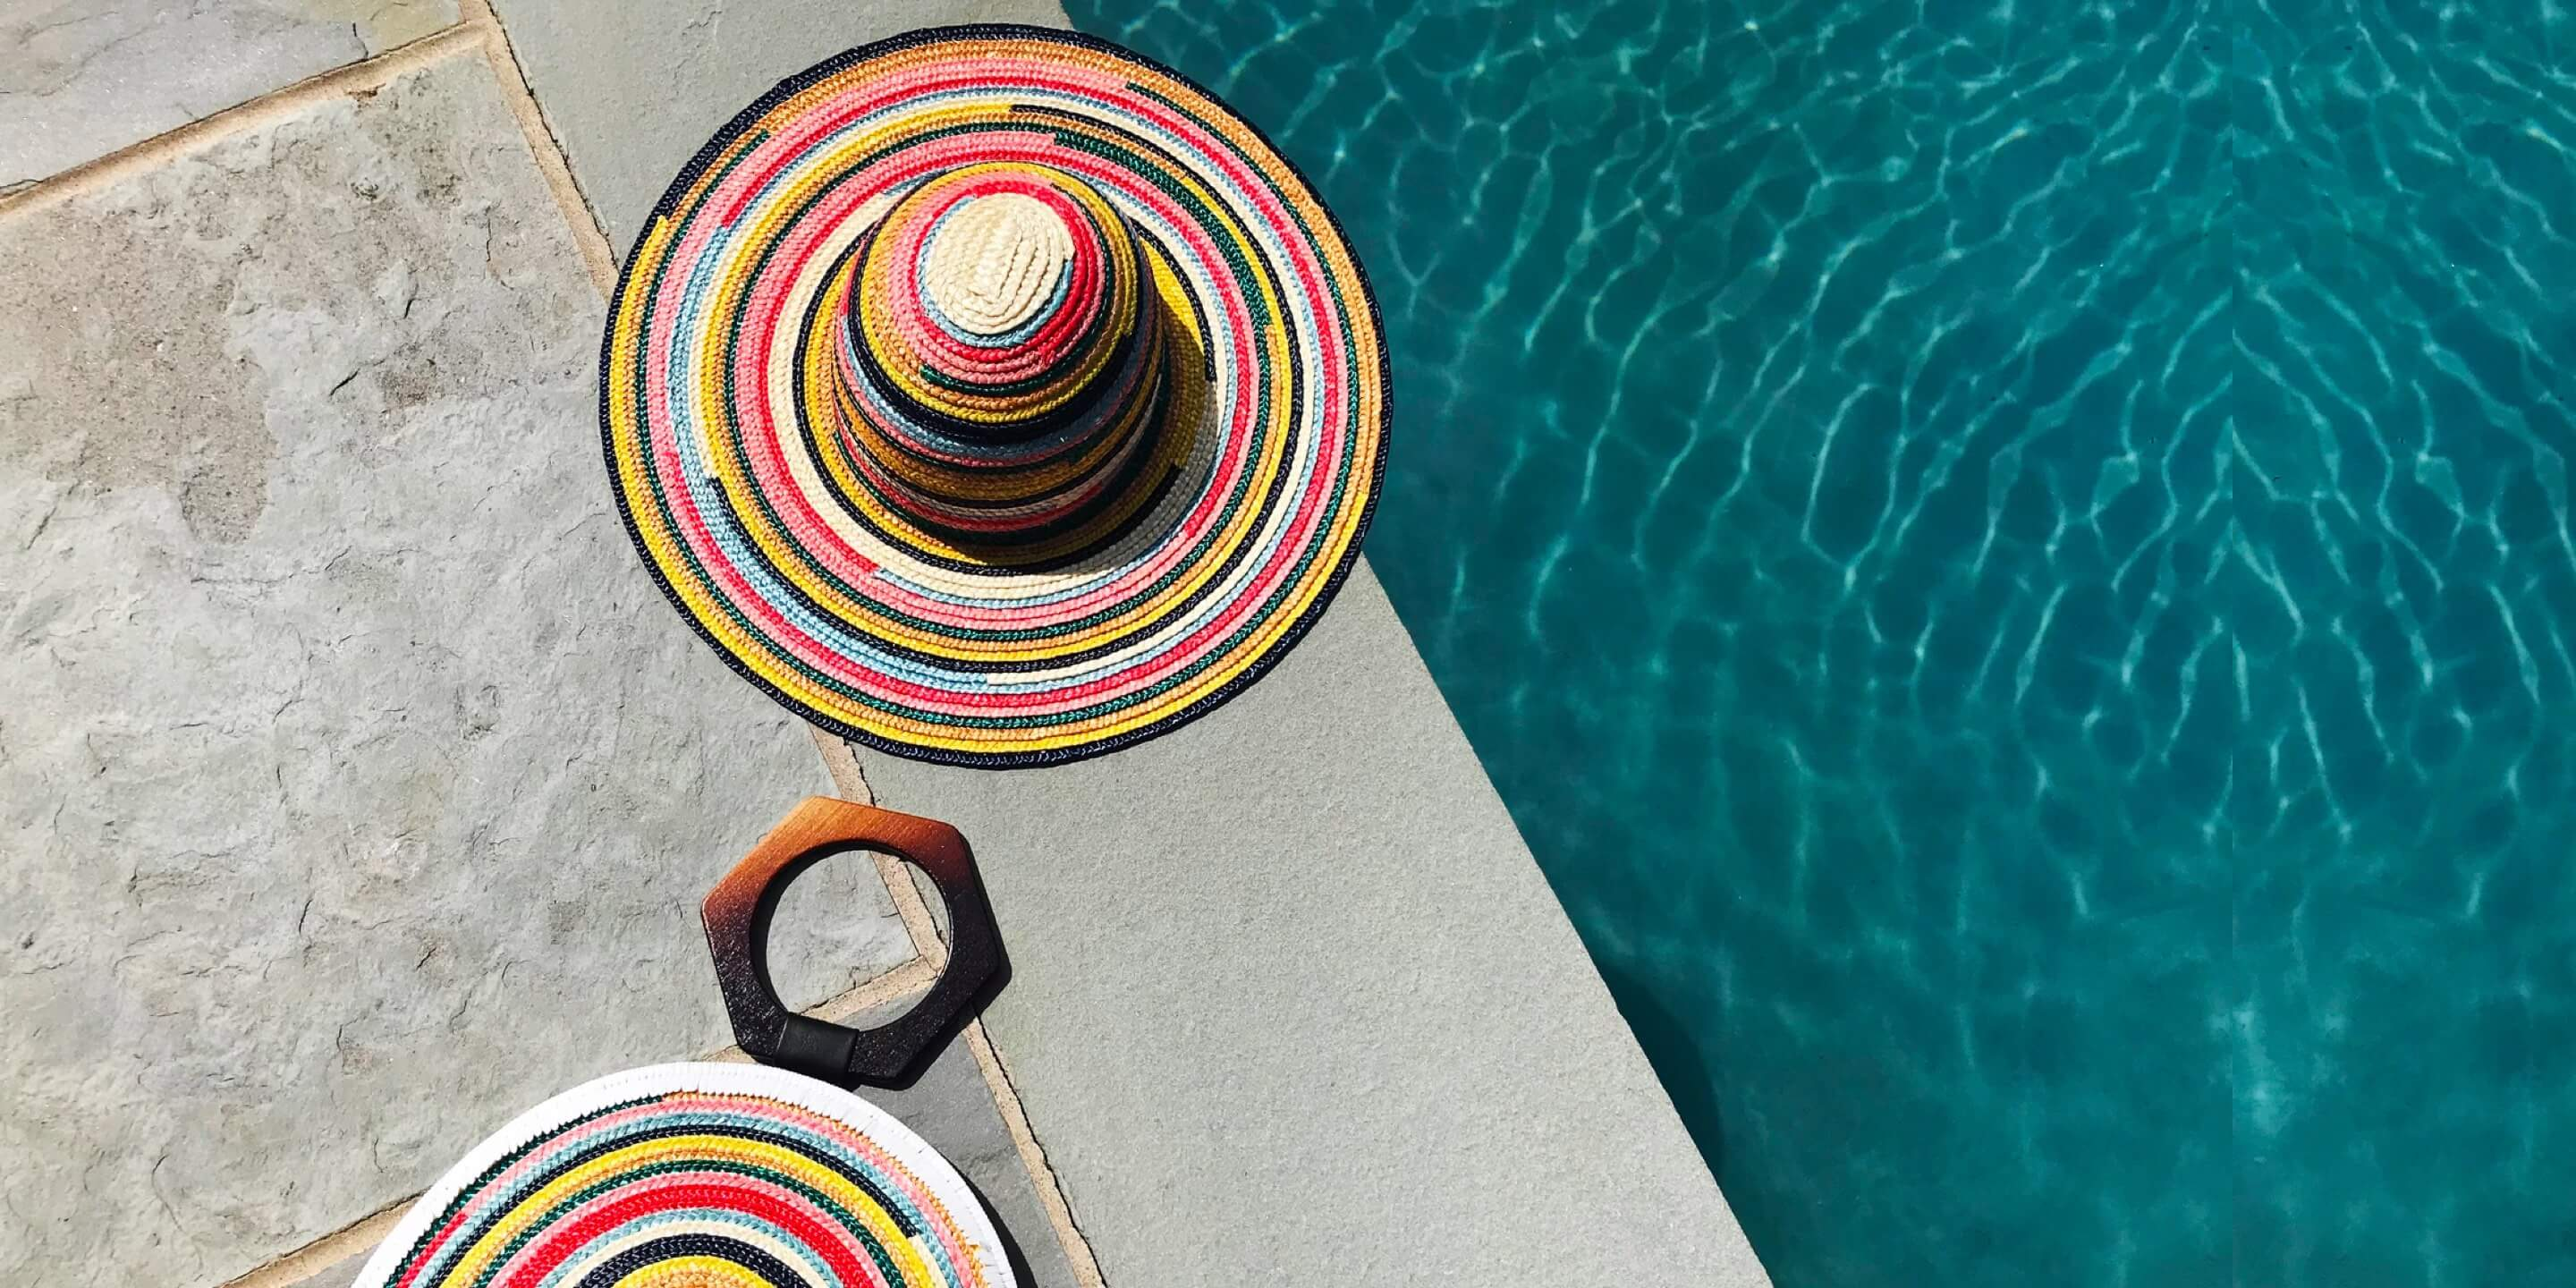 eugenia kim hats next to swimming pool